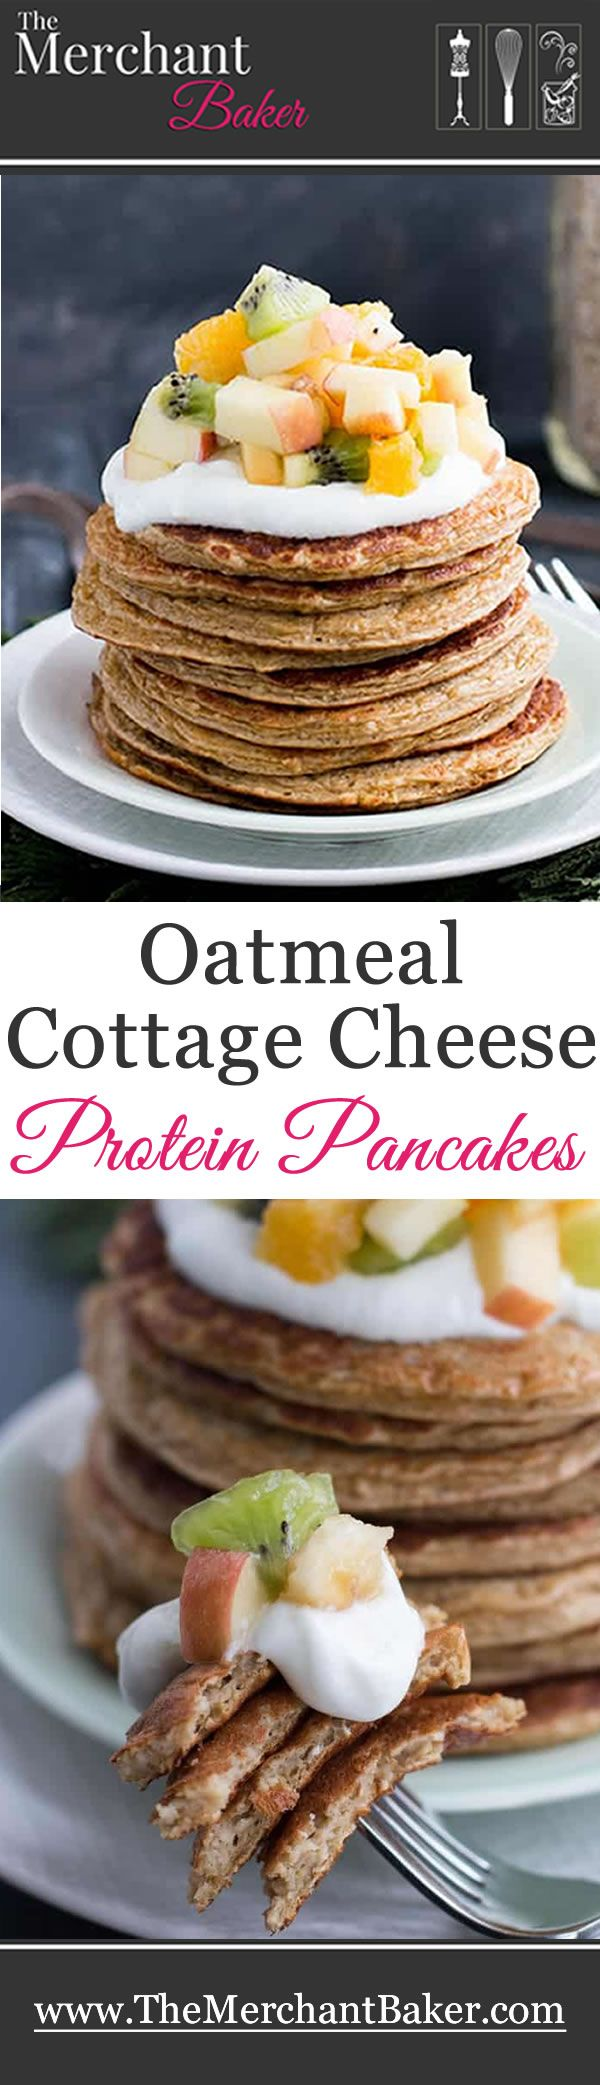 Delightful Oatmeal Cottage Cheese Protein Pancakes | Recipe | Protein Pancakes, Cottage  Cheese And Oatmeal